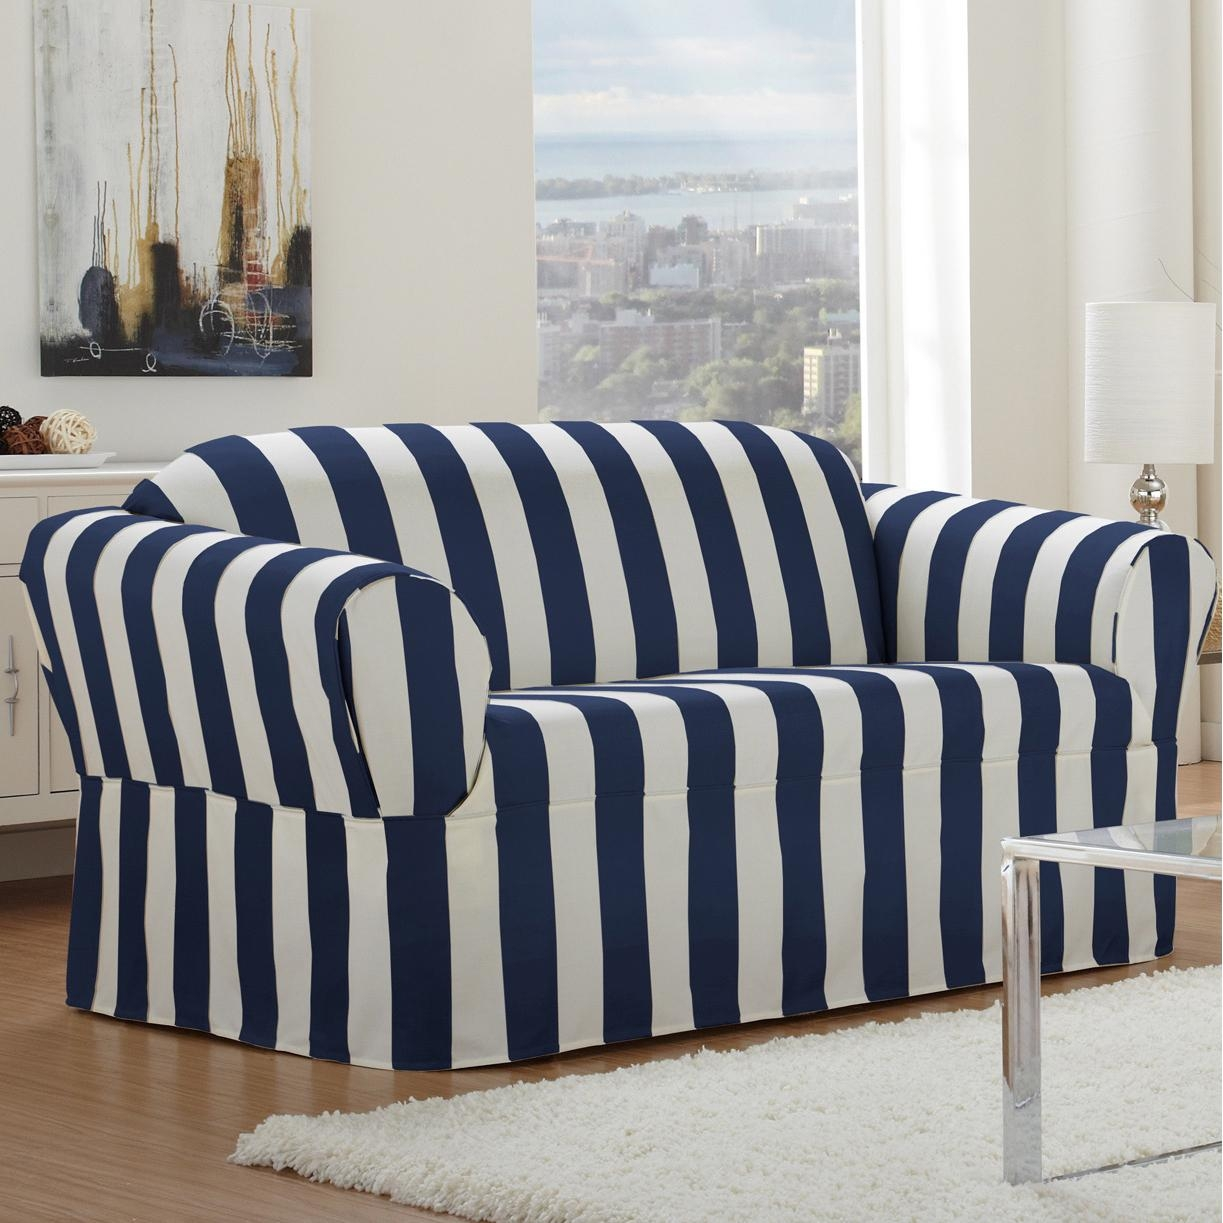 Delightful Modern Couch Slipcovers Black Color Polyester Spandex Regarding Striped Sofa Slipcovers (Image 7 of 20)